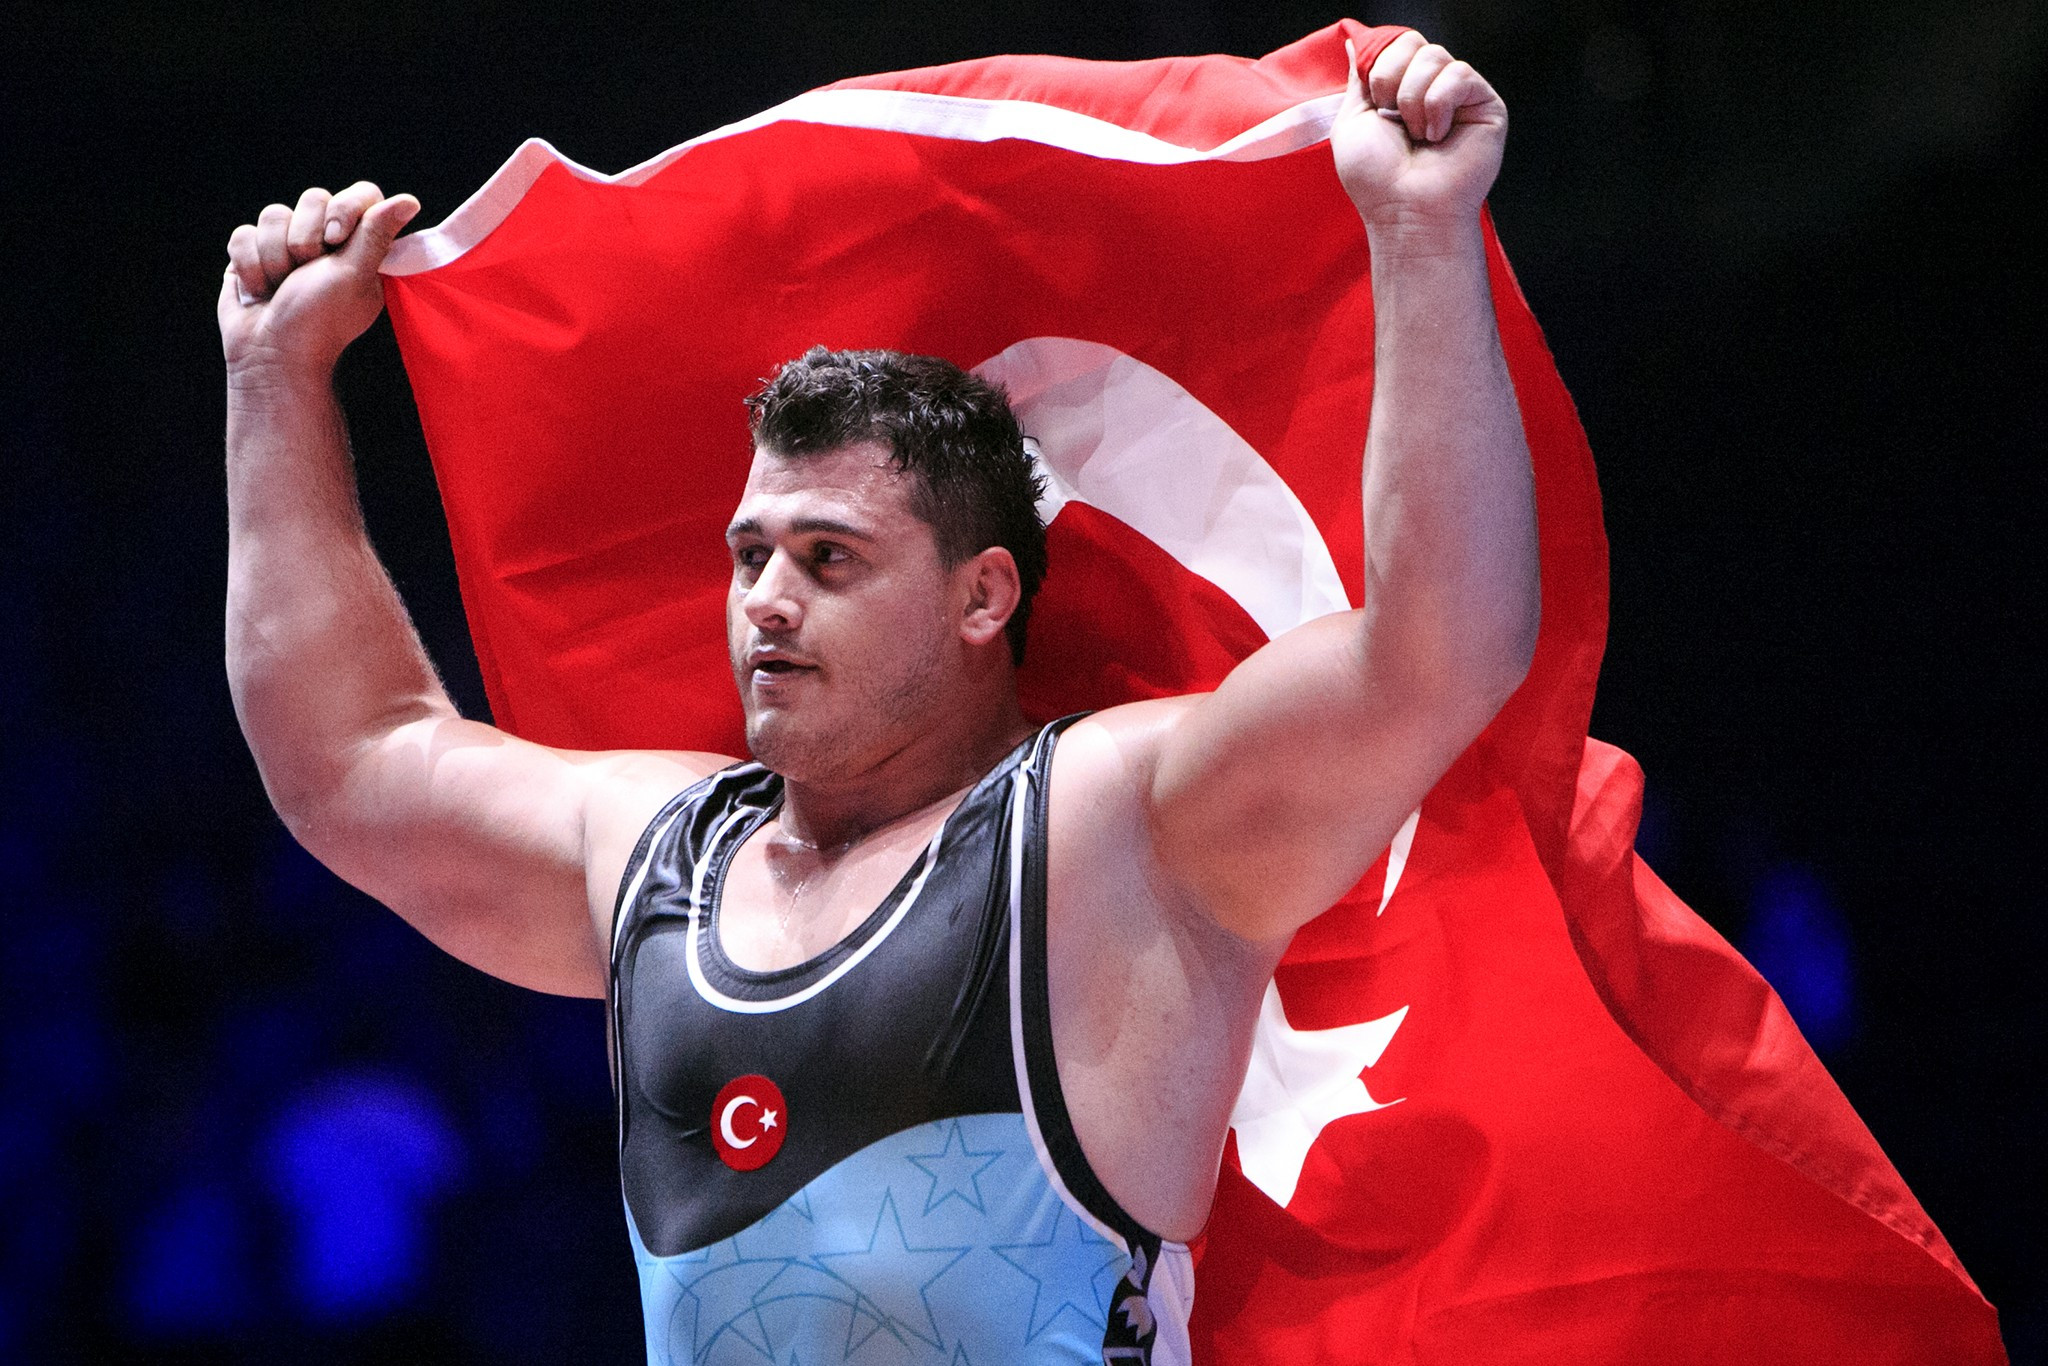 Riza Kayaalp of Turkey was among the star perforners on day two ©UWW